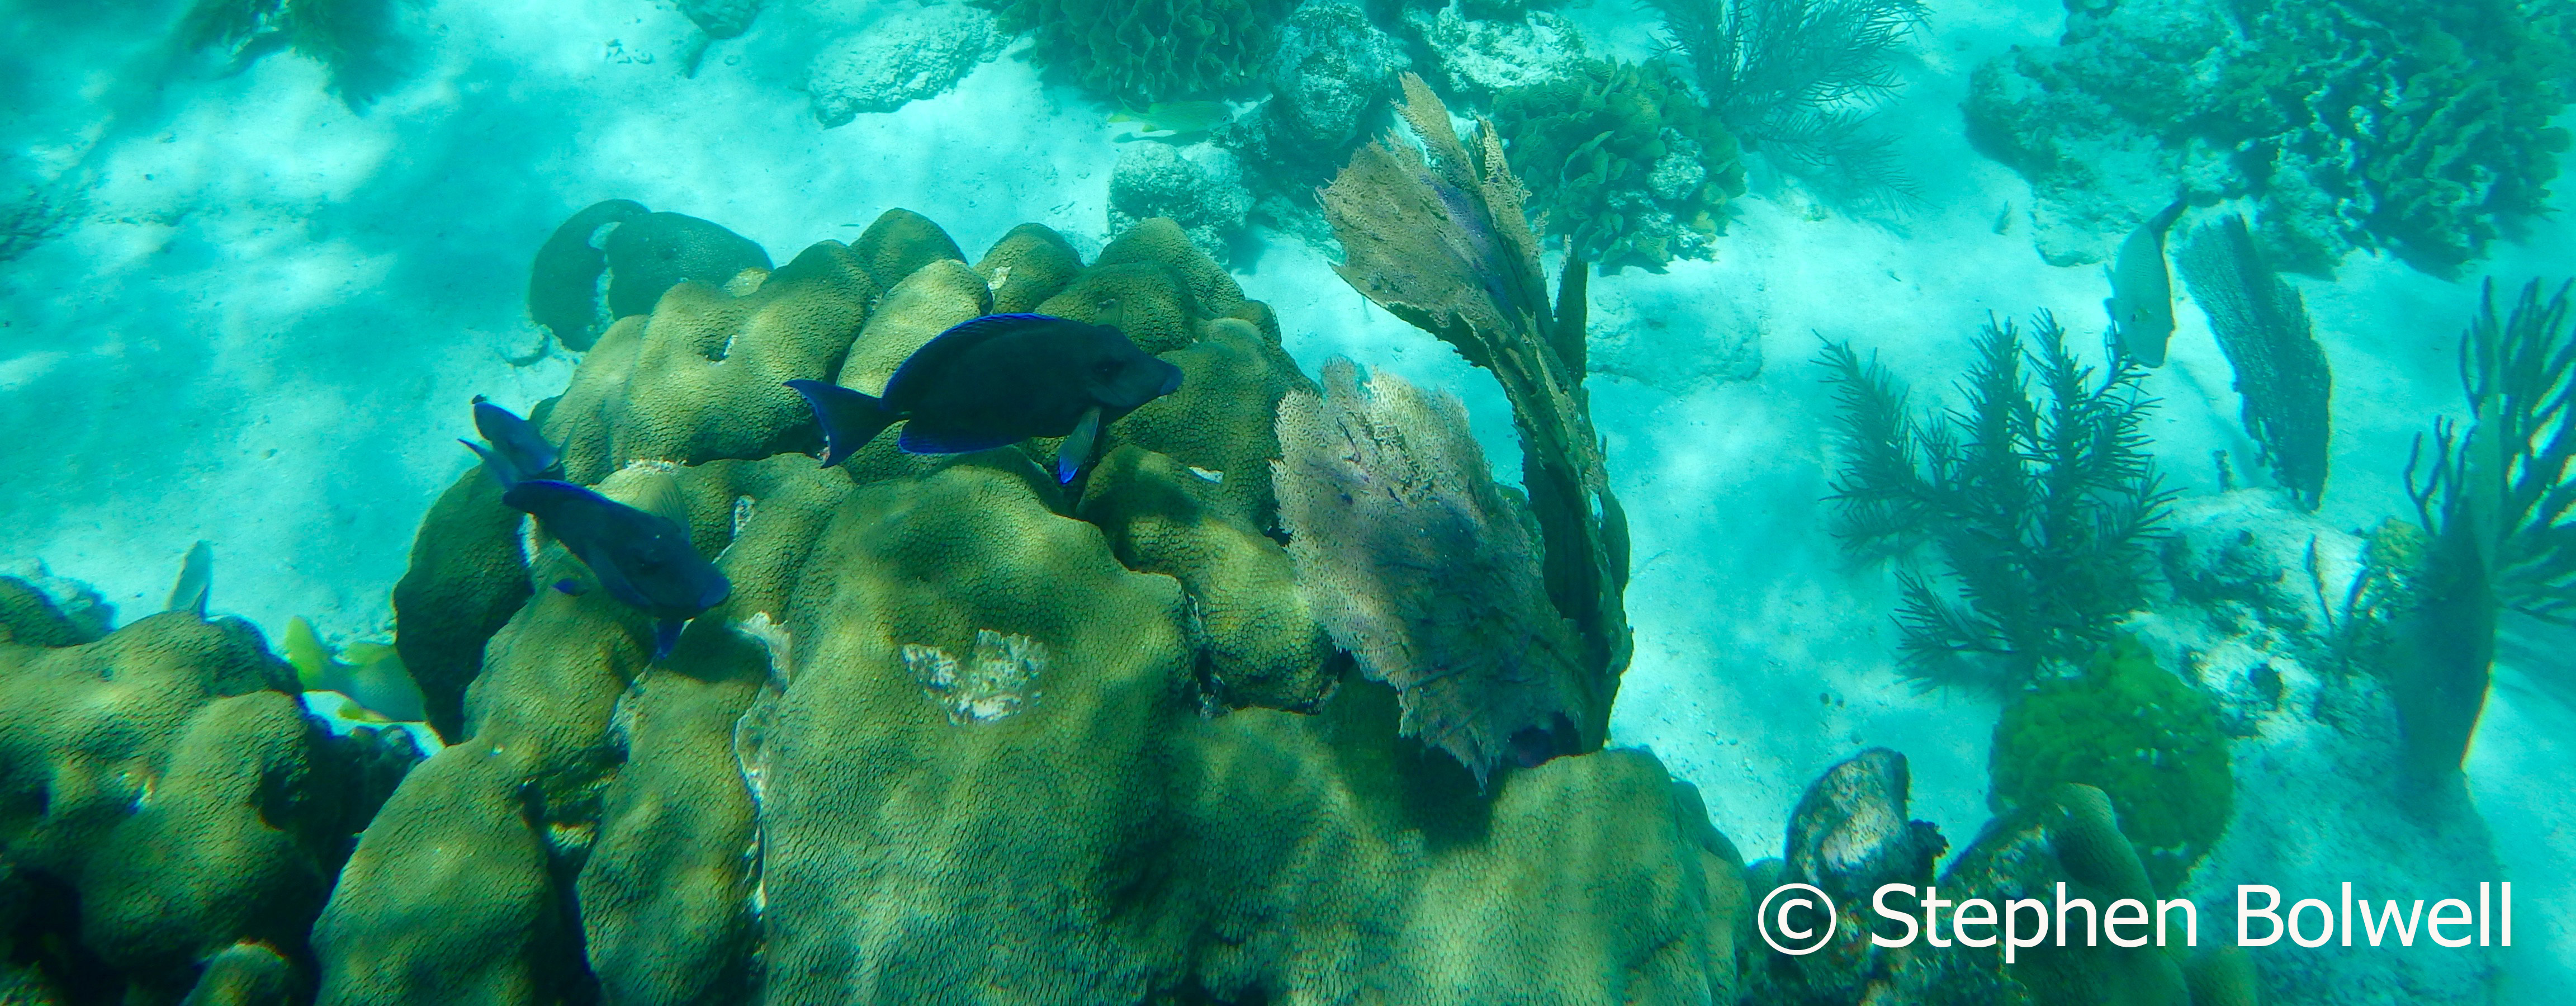 saving belizes barrier reefs The coral reefs and coastal mangroves of belize are necessary for both the wildlife that live there and the people who rely on it for income and protection help us save this threatened world heritage site.